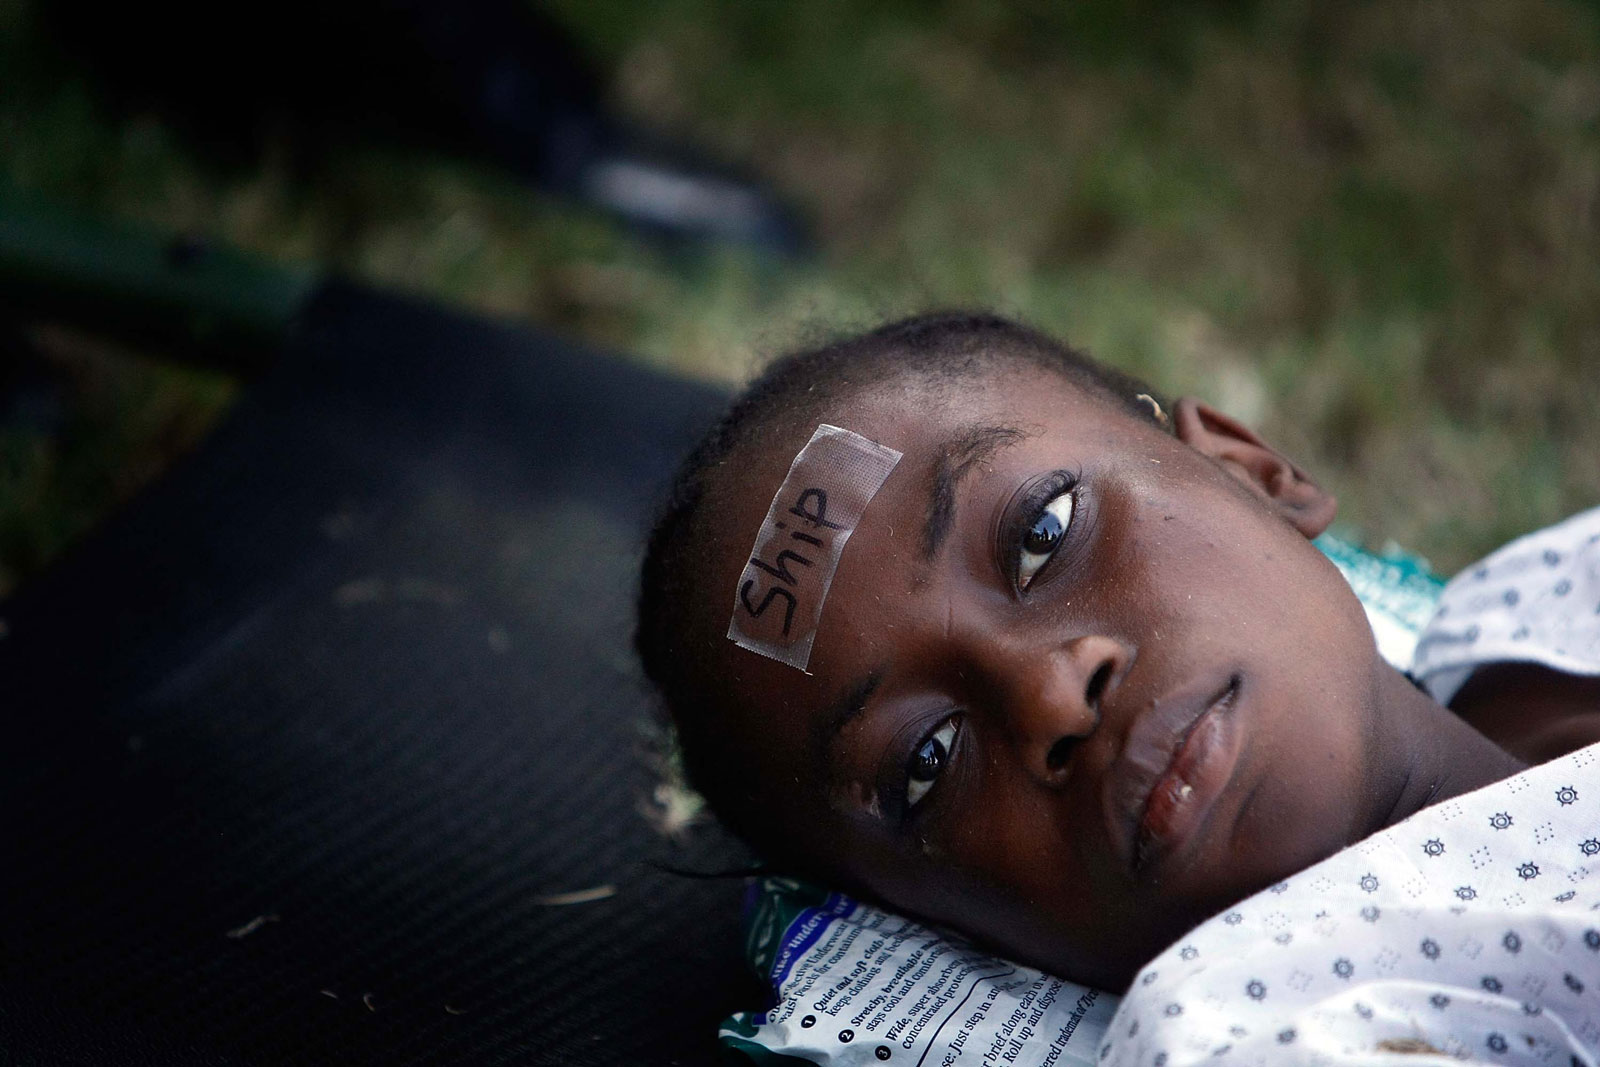 A little girl in Haiti waiting to be medivaced by US Army soldiers after the 2010 earthquake, an image that Christina Sharpe writes about in her book In The Wake